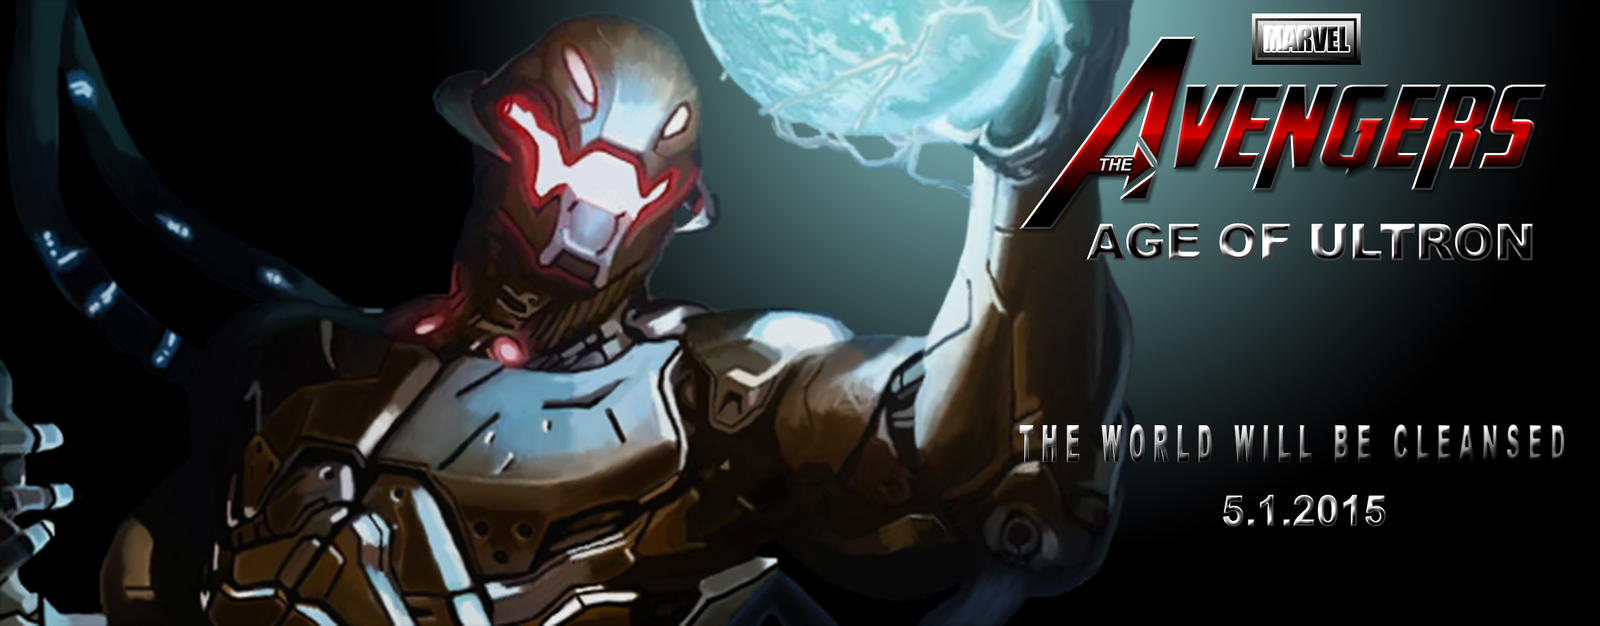 Avengers Age Of Ultron By Iloegbunam On Deviantart: The Avengers Age Of Ultron Promo Poster 2 By Tmaher3 On